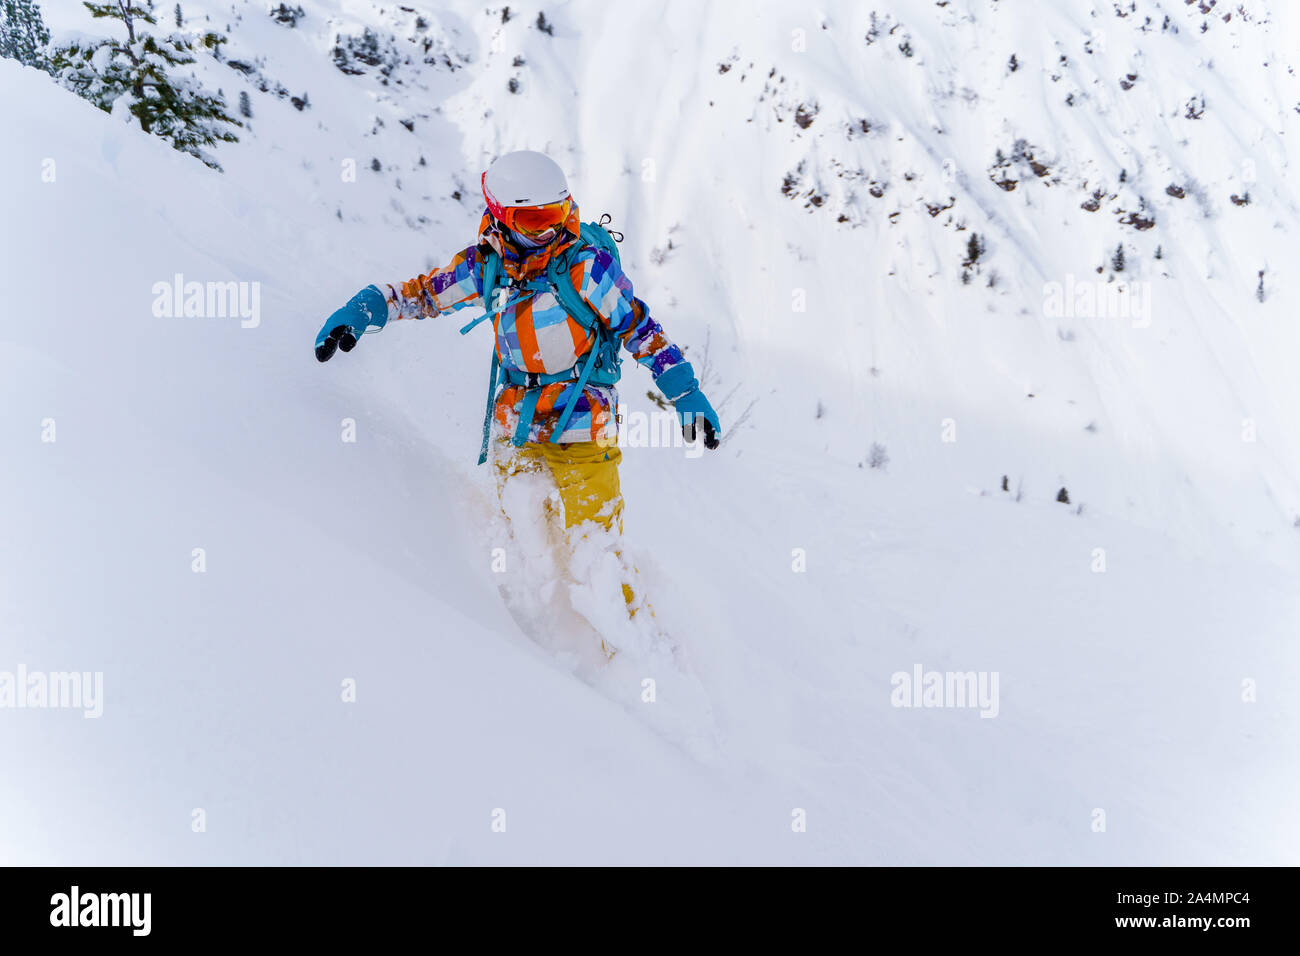 Young athlete girl in helmet and mask is riding on snowboard on snowy slope at winter day. Stock Photo